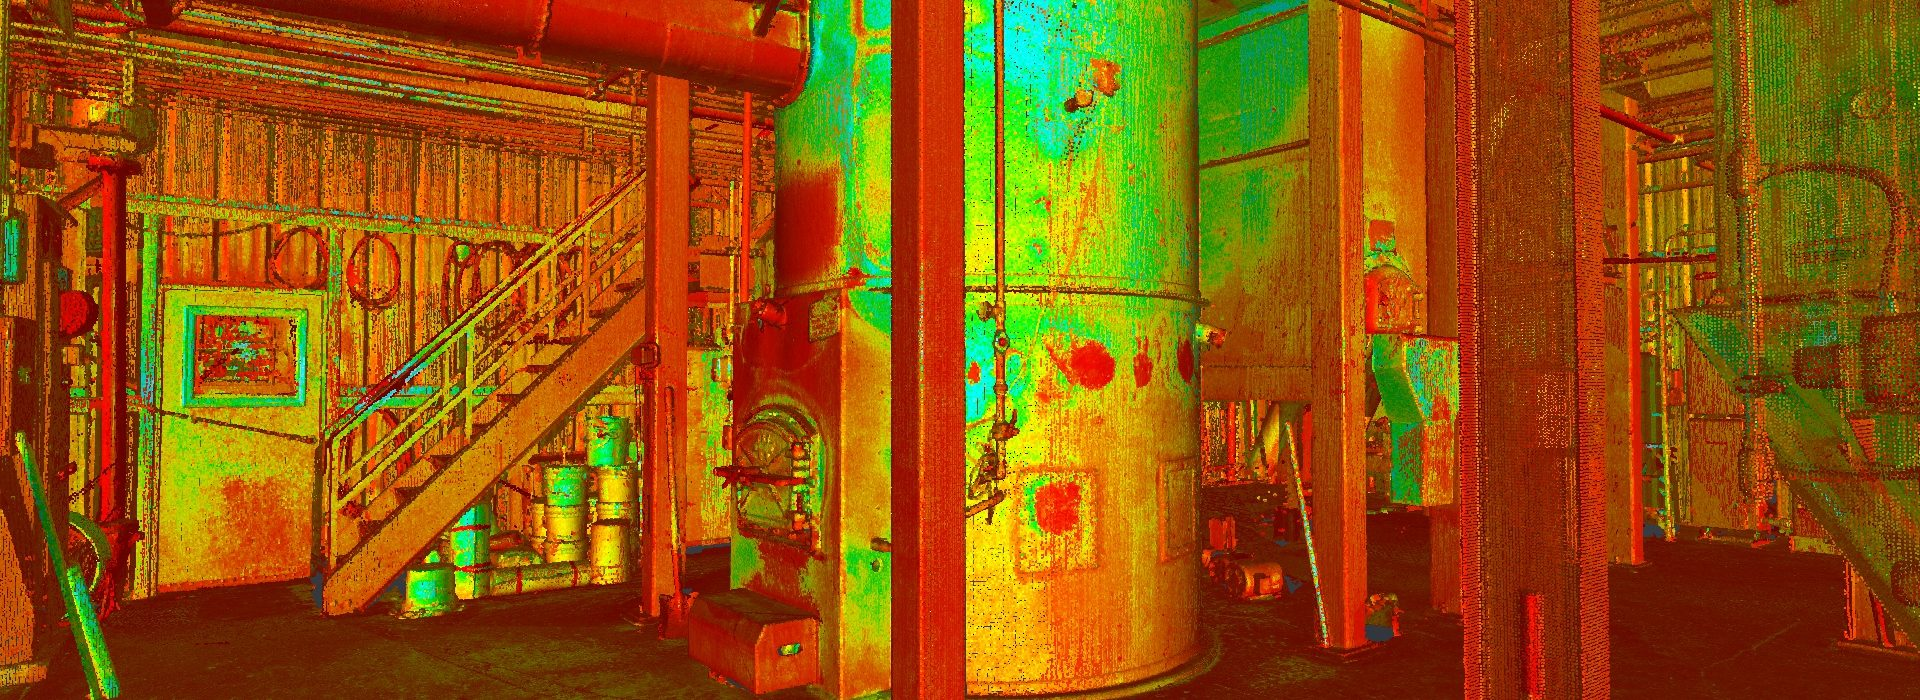 Industrial 3D Laser Scanning & Reality Capture   Rogue